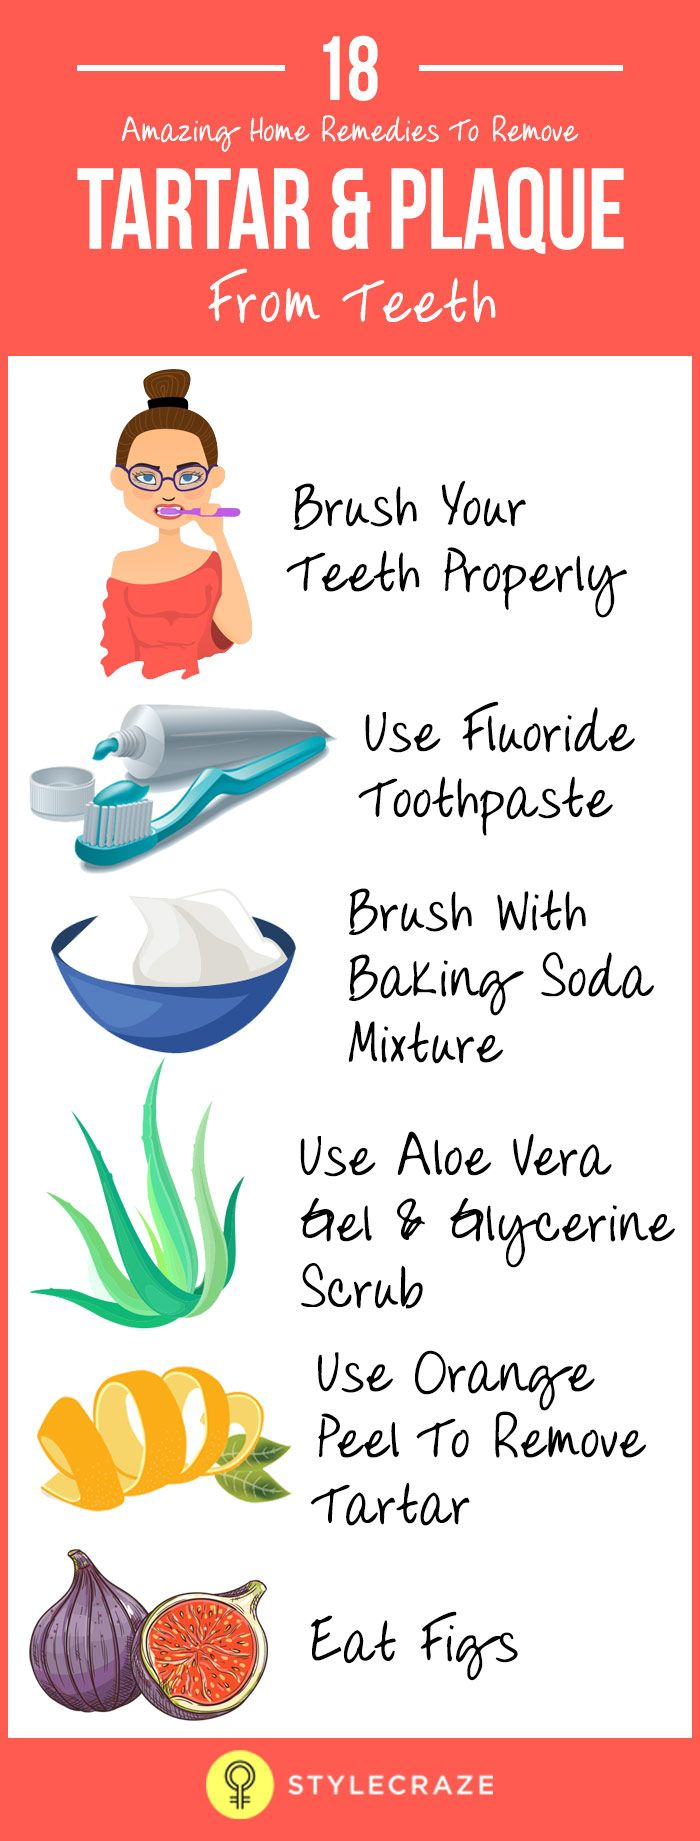 how to get rid of tartar on teeth home remedies